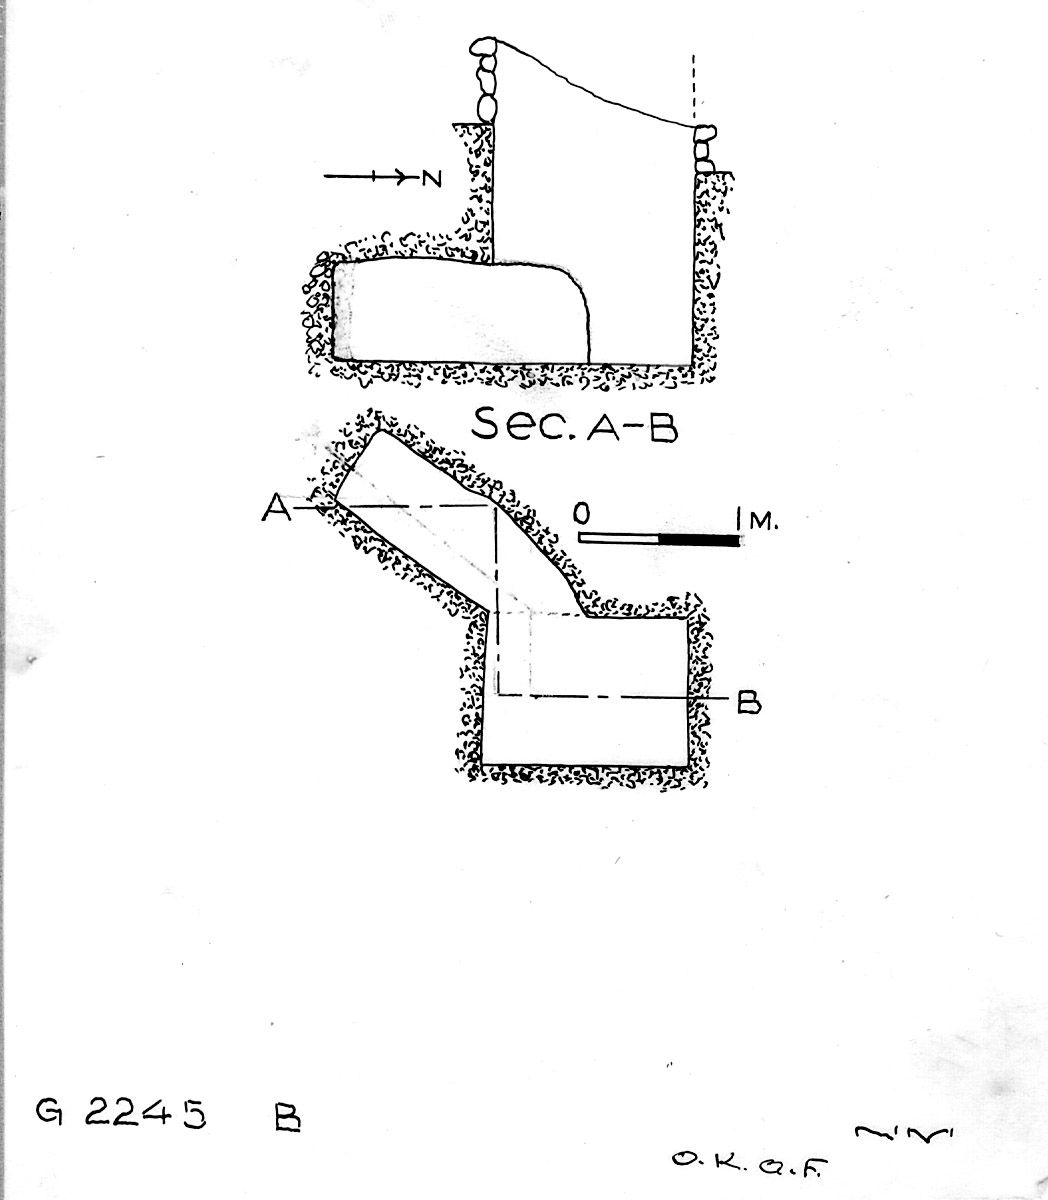 Maps and plans: G 2245, Shaft B